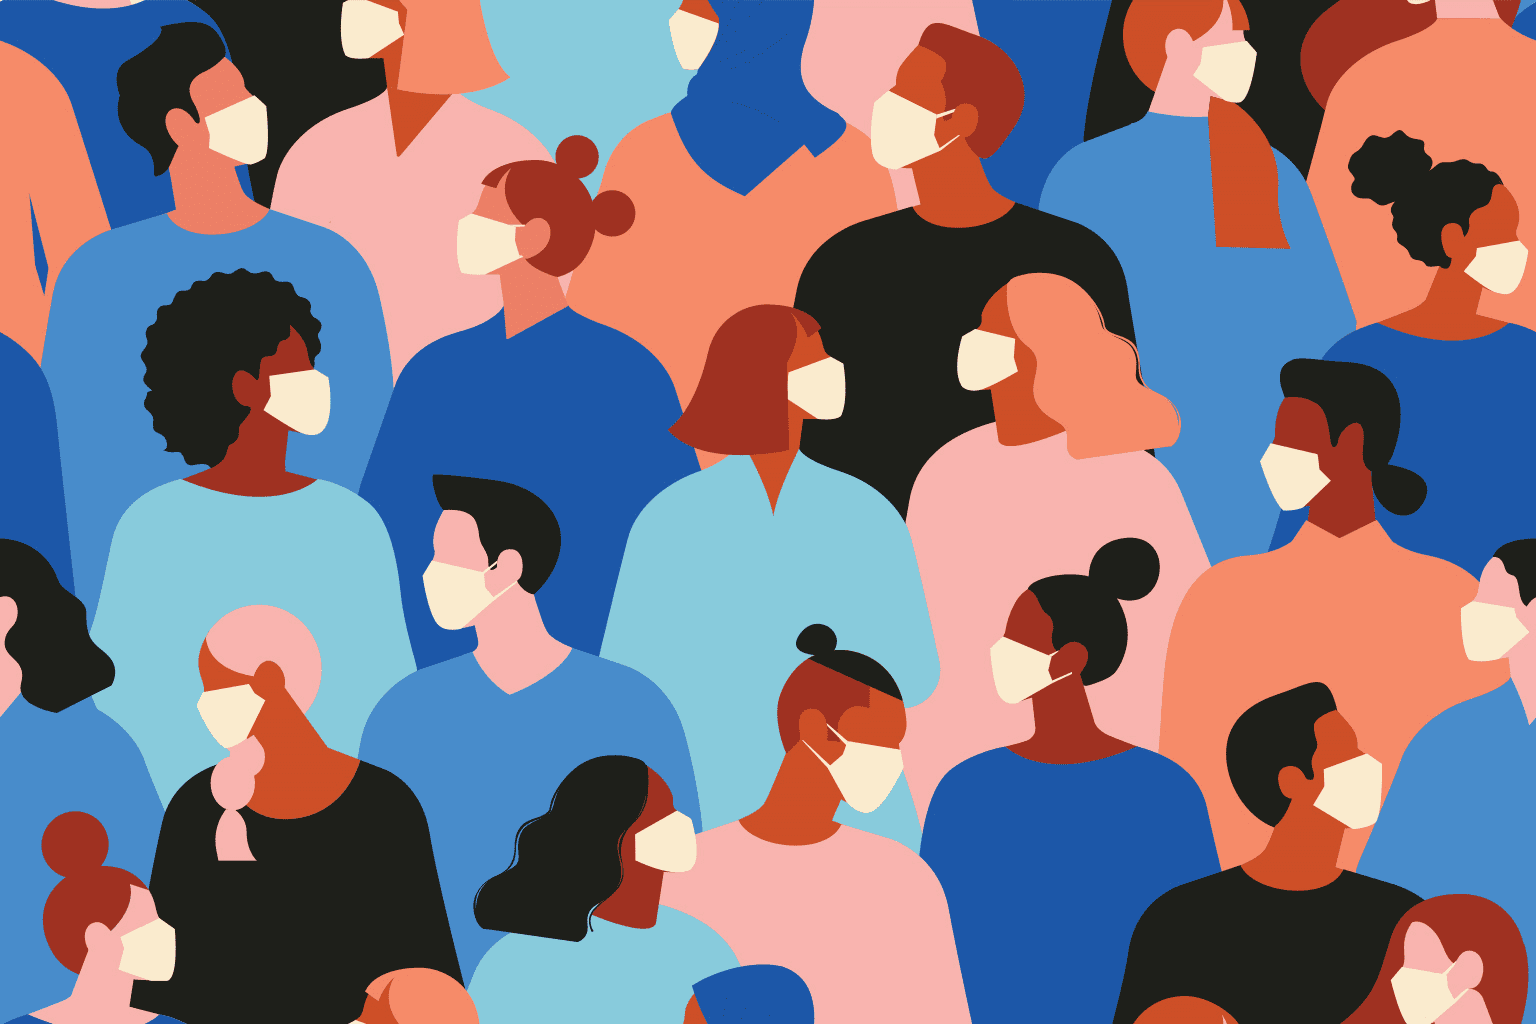 Stylized drawing of crowd of people wearing masks